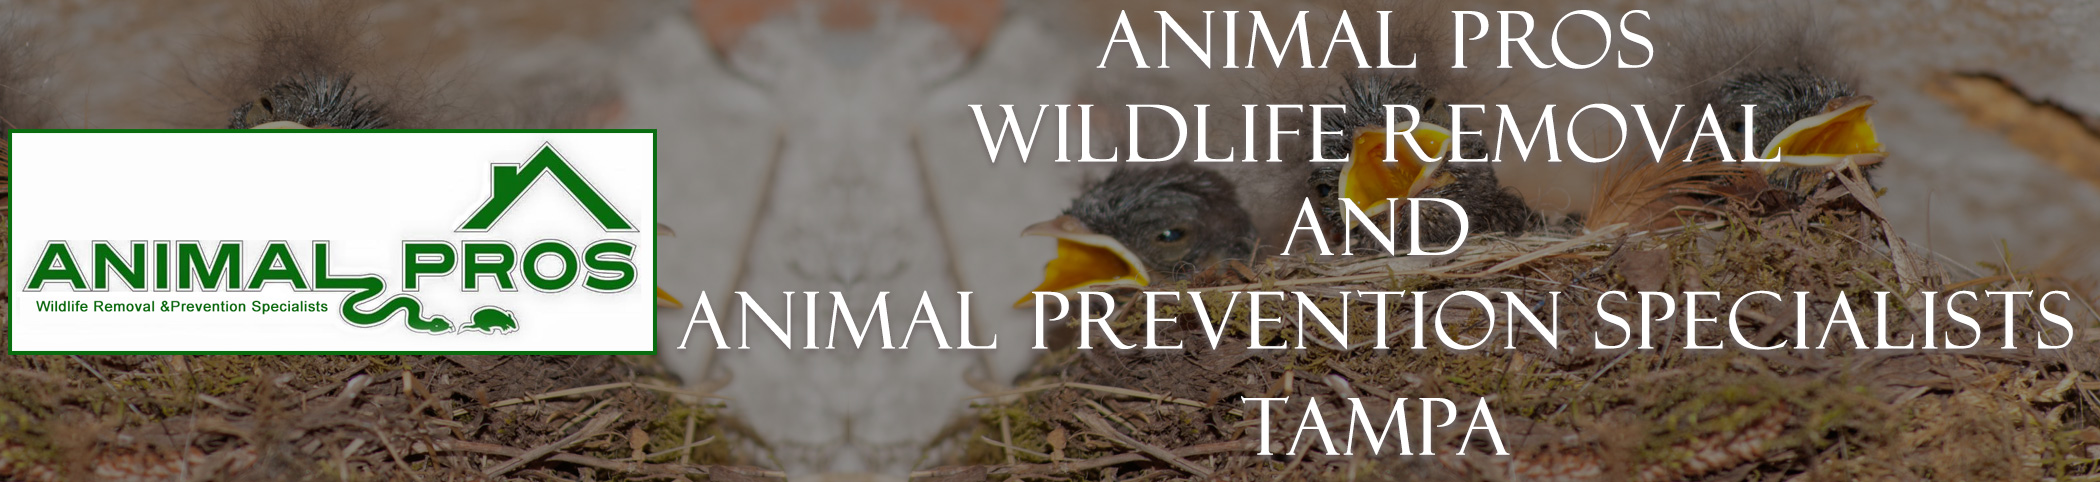 Virginia-Professional-Wildlife-Removal-Services-Glen-Allen